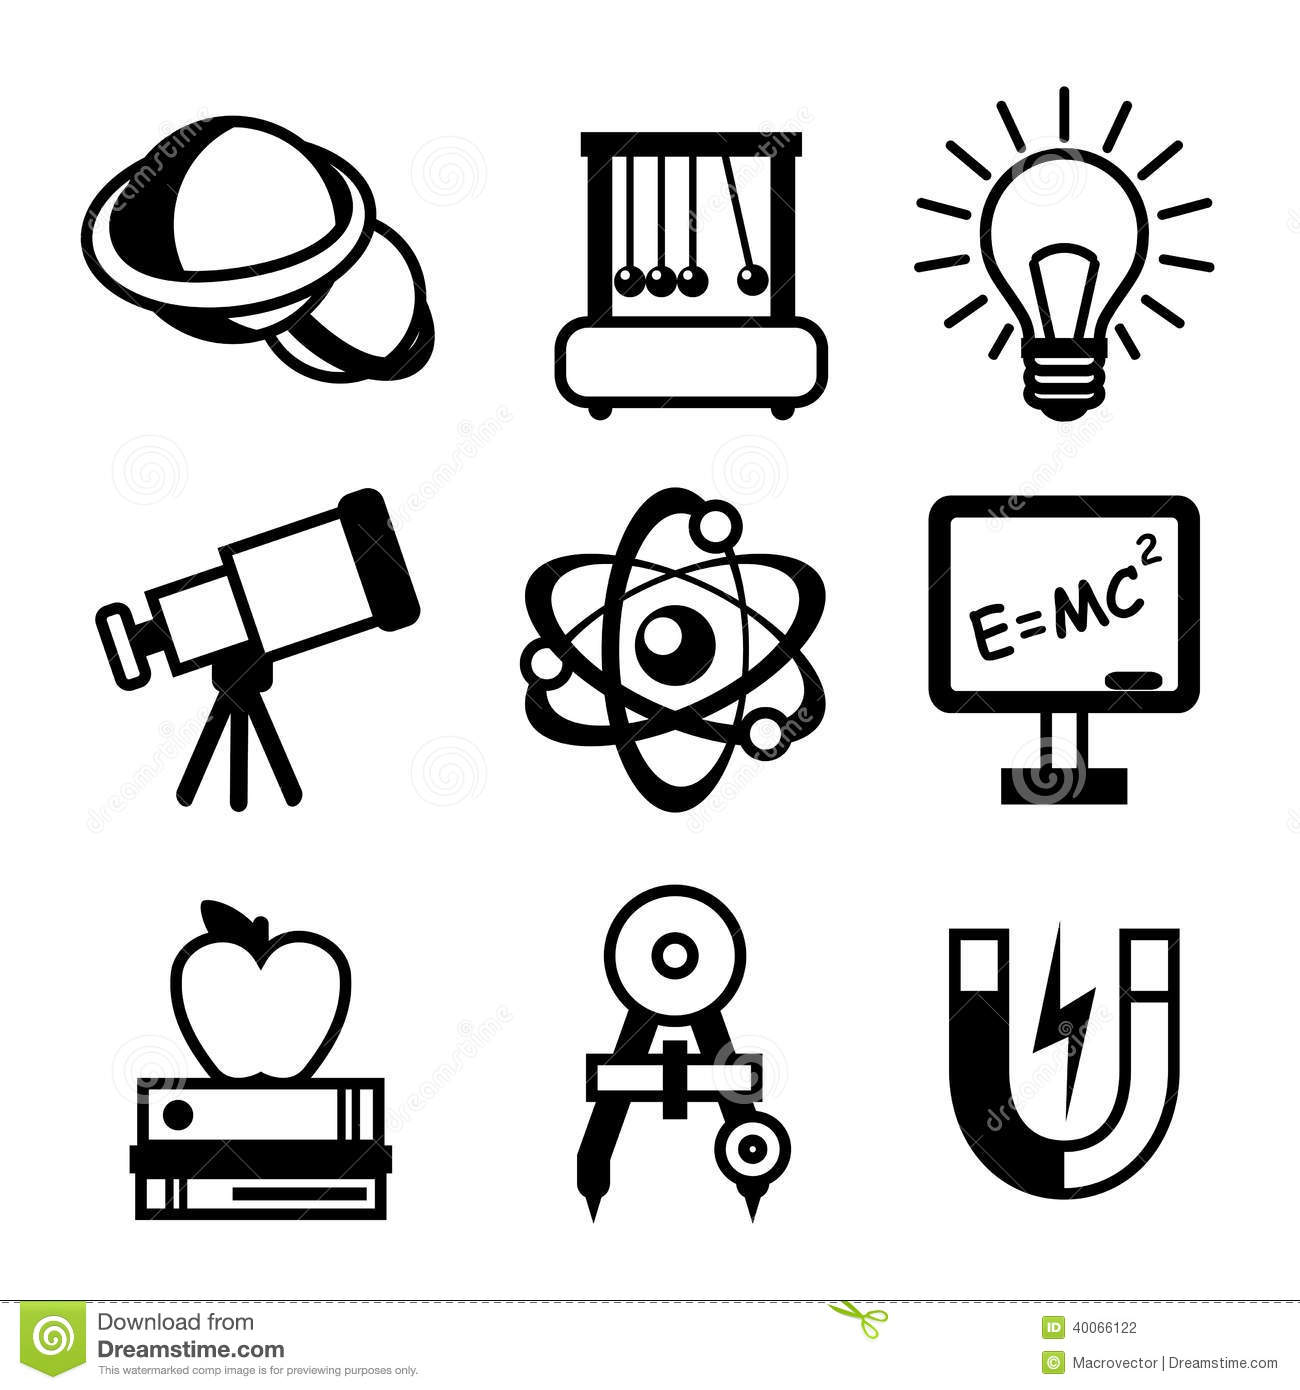 Physics clipart black and white 5 » Clipart Station